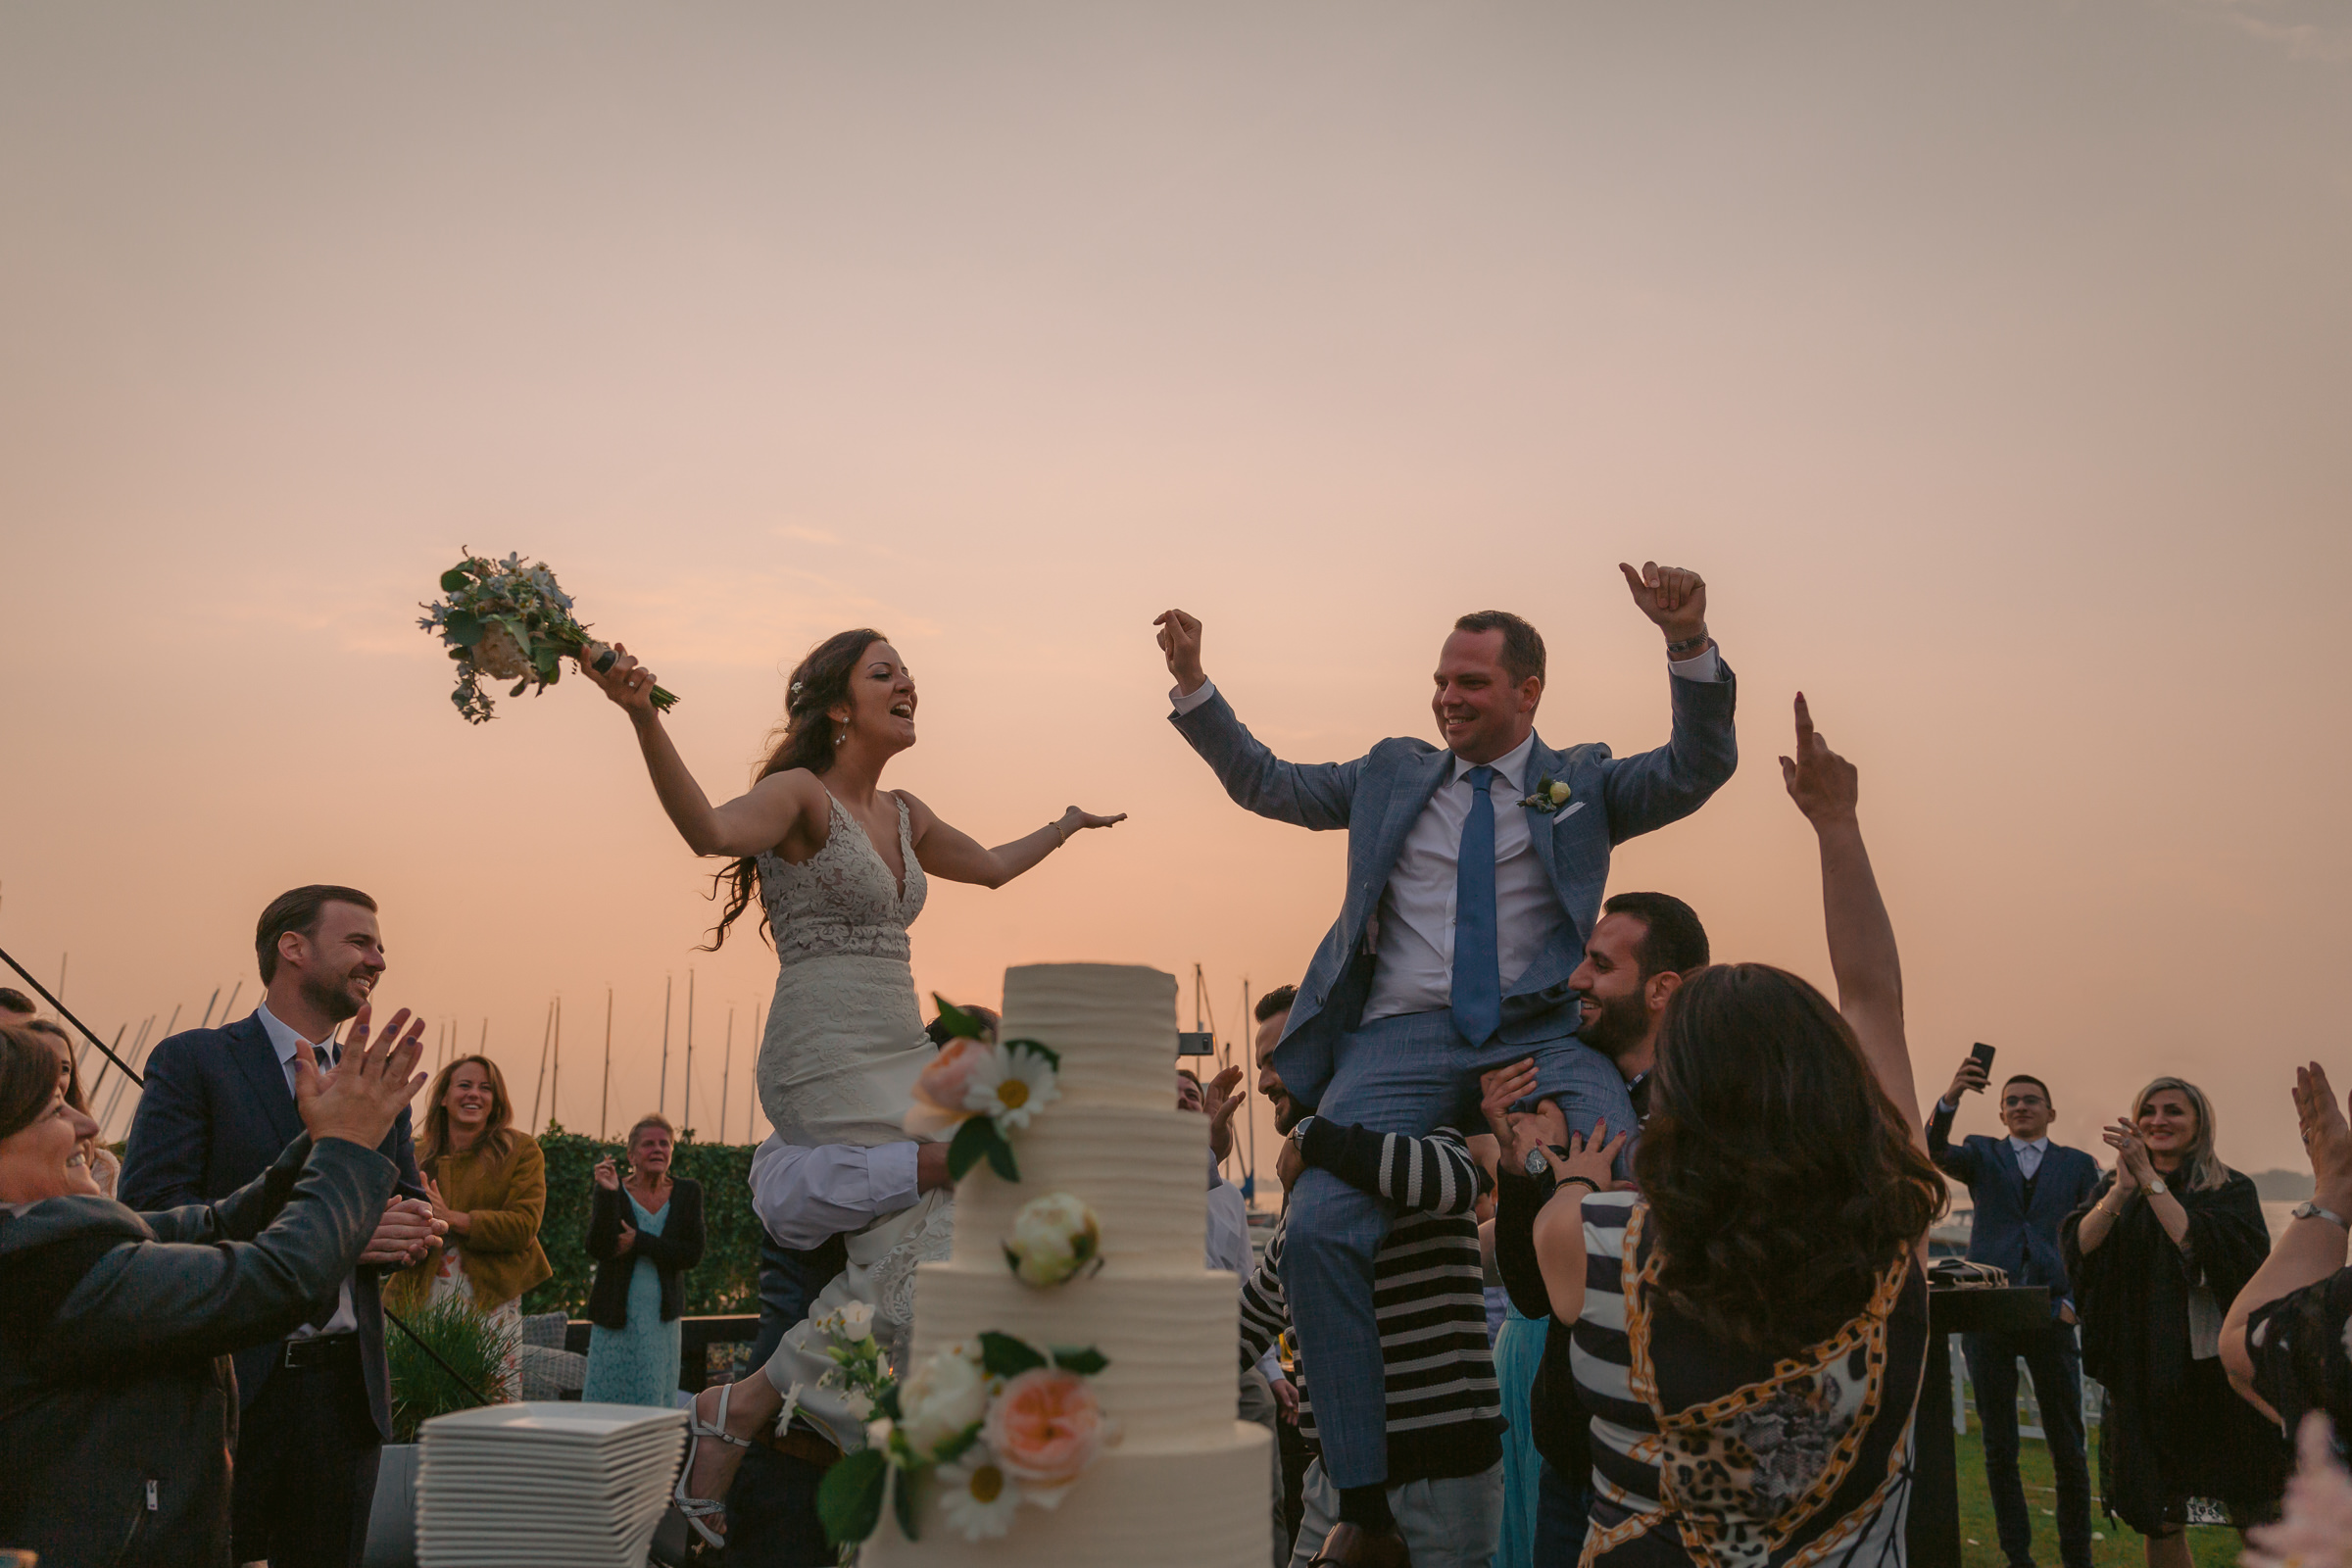 Outdoor bride and groom carried aloft by their cake - photo by Peter van der Lingen Wedding Photography